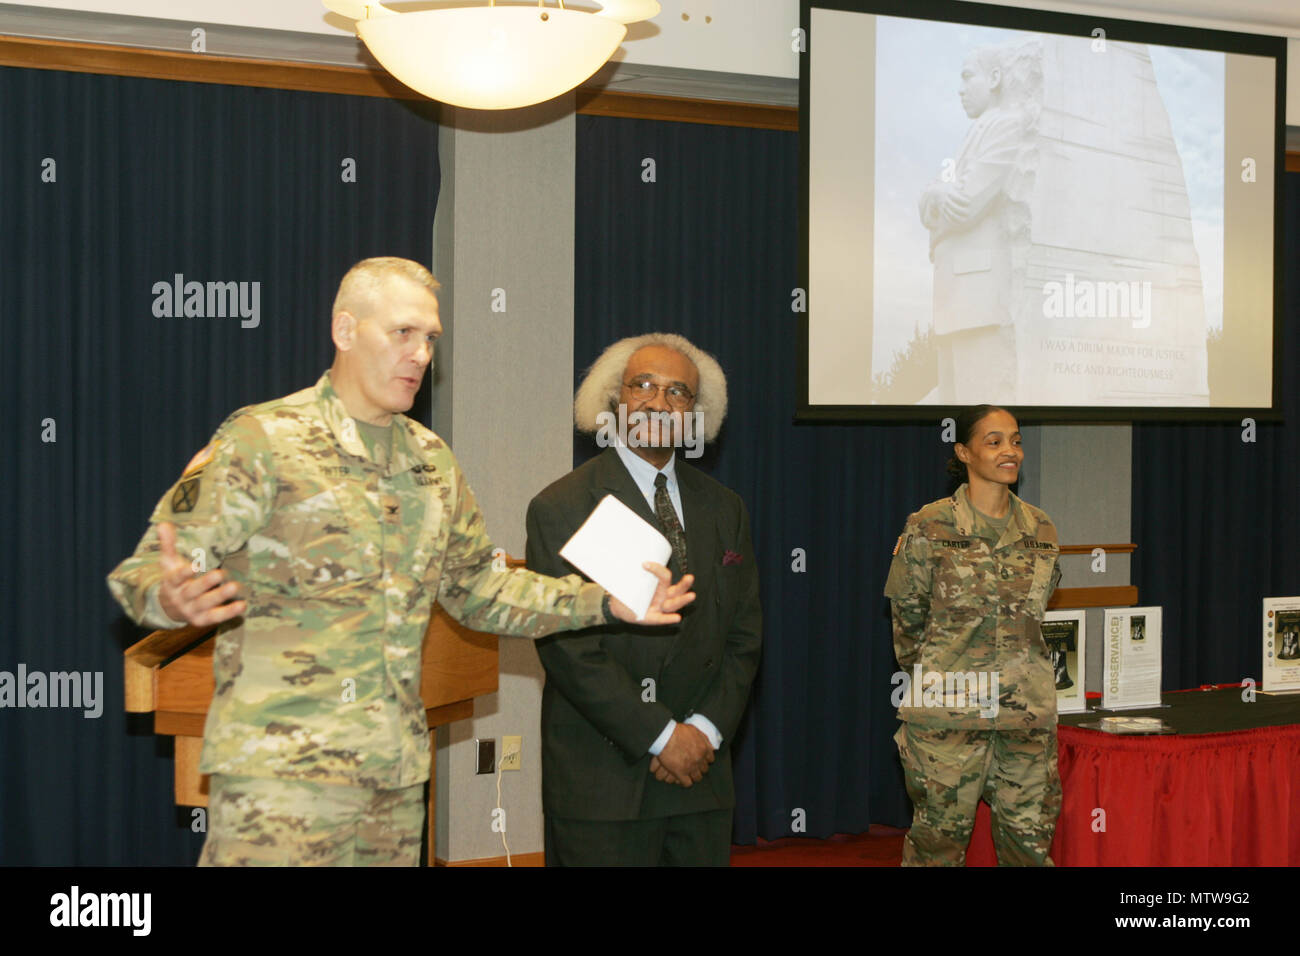 Garrison Commander Col. David J. Pinter Sr. provides closing remarks as Dr. Floyd Rose of Madison, Wis., and Master Sgt. Freida Carter, Fort McCoy equal opportunity adviser, look on during the Fort McCoy observance of Martin Luther King Jr. Day on Jan 12, 2017, at McCoy's Community Center. Rose served as the guest speaker for the event. He is a businessman who's worked for more than 40 years to evaluate, analyze, and develop policy for private- and public-sector organizations concerning sales growth, procurement practices, human-resource management, and policy. He holds leadership positions in Stock Photo